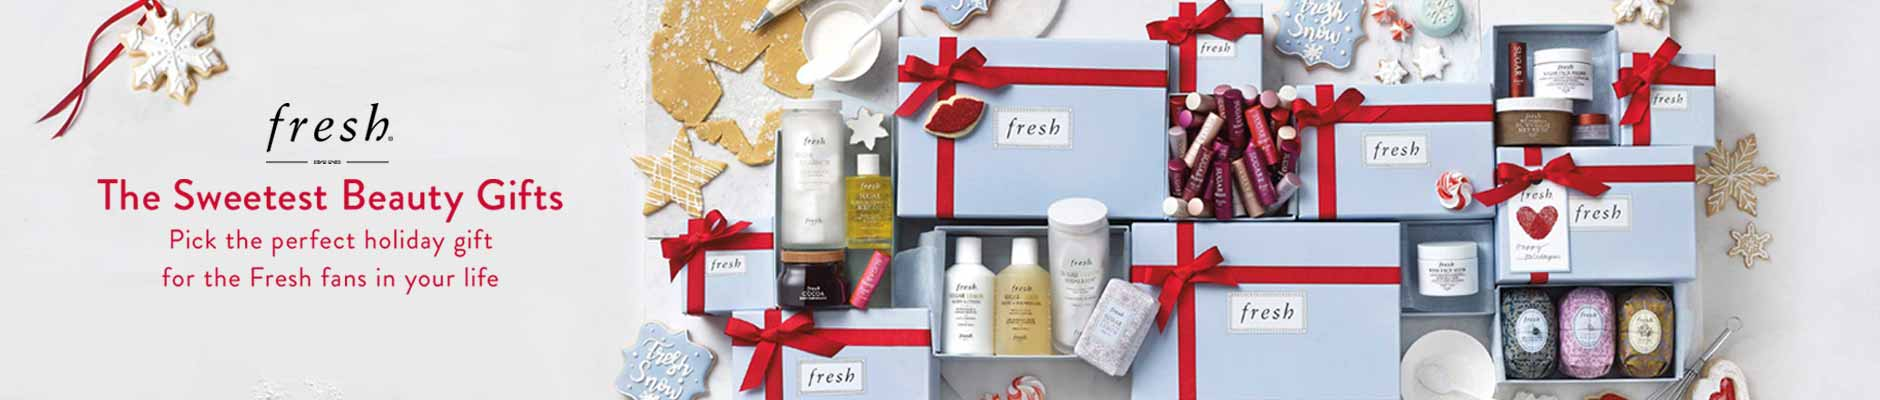 Fresh - the sweetest beauty gifts, pick the perfect holiday gift for the fresh fans in your life